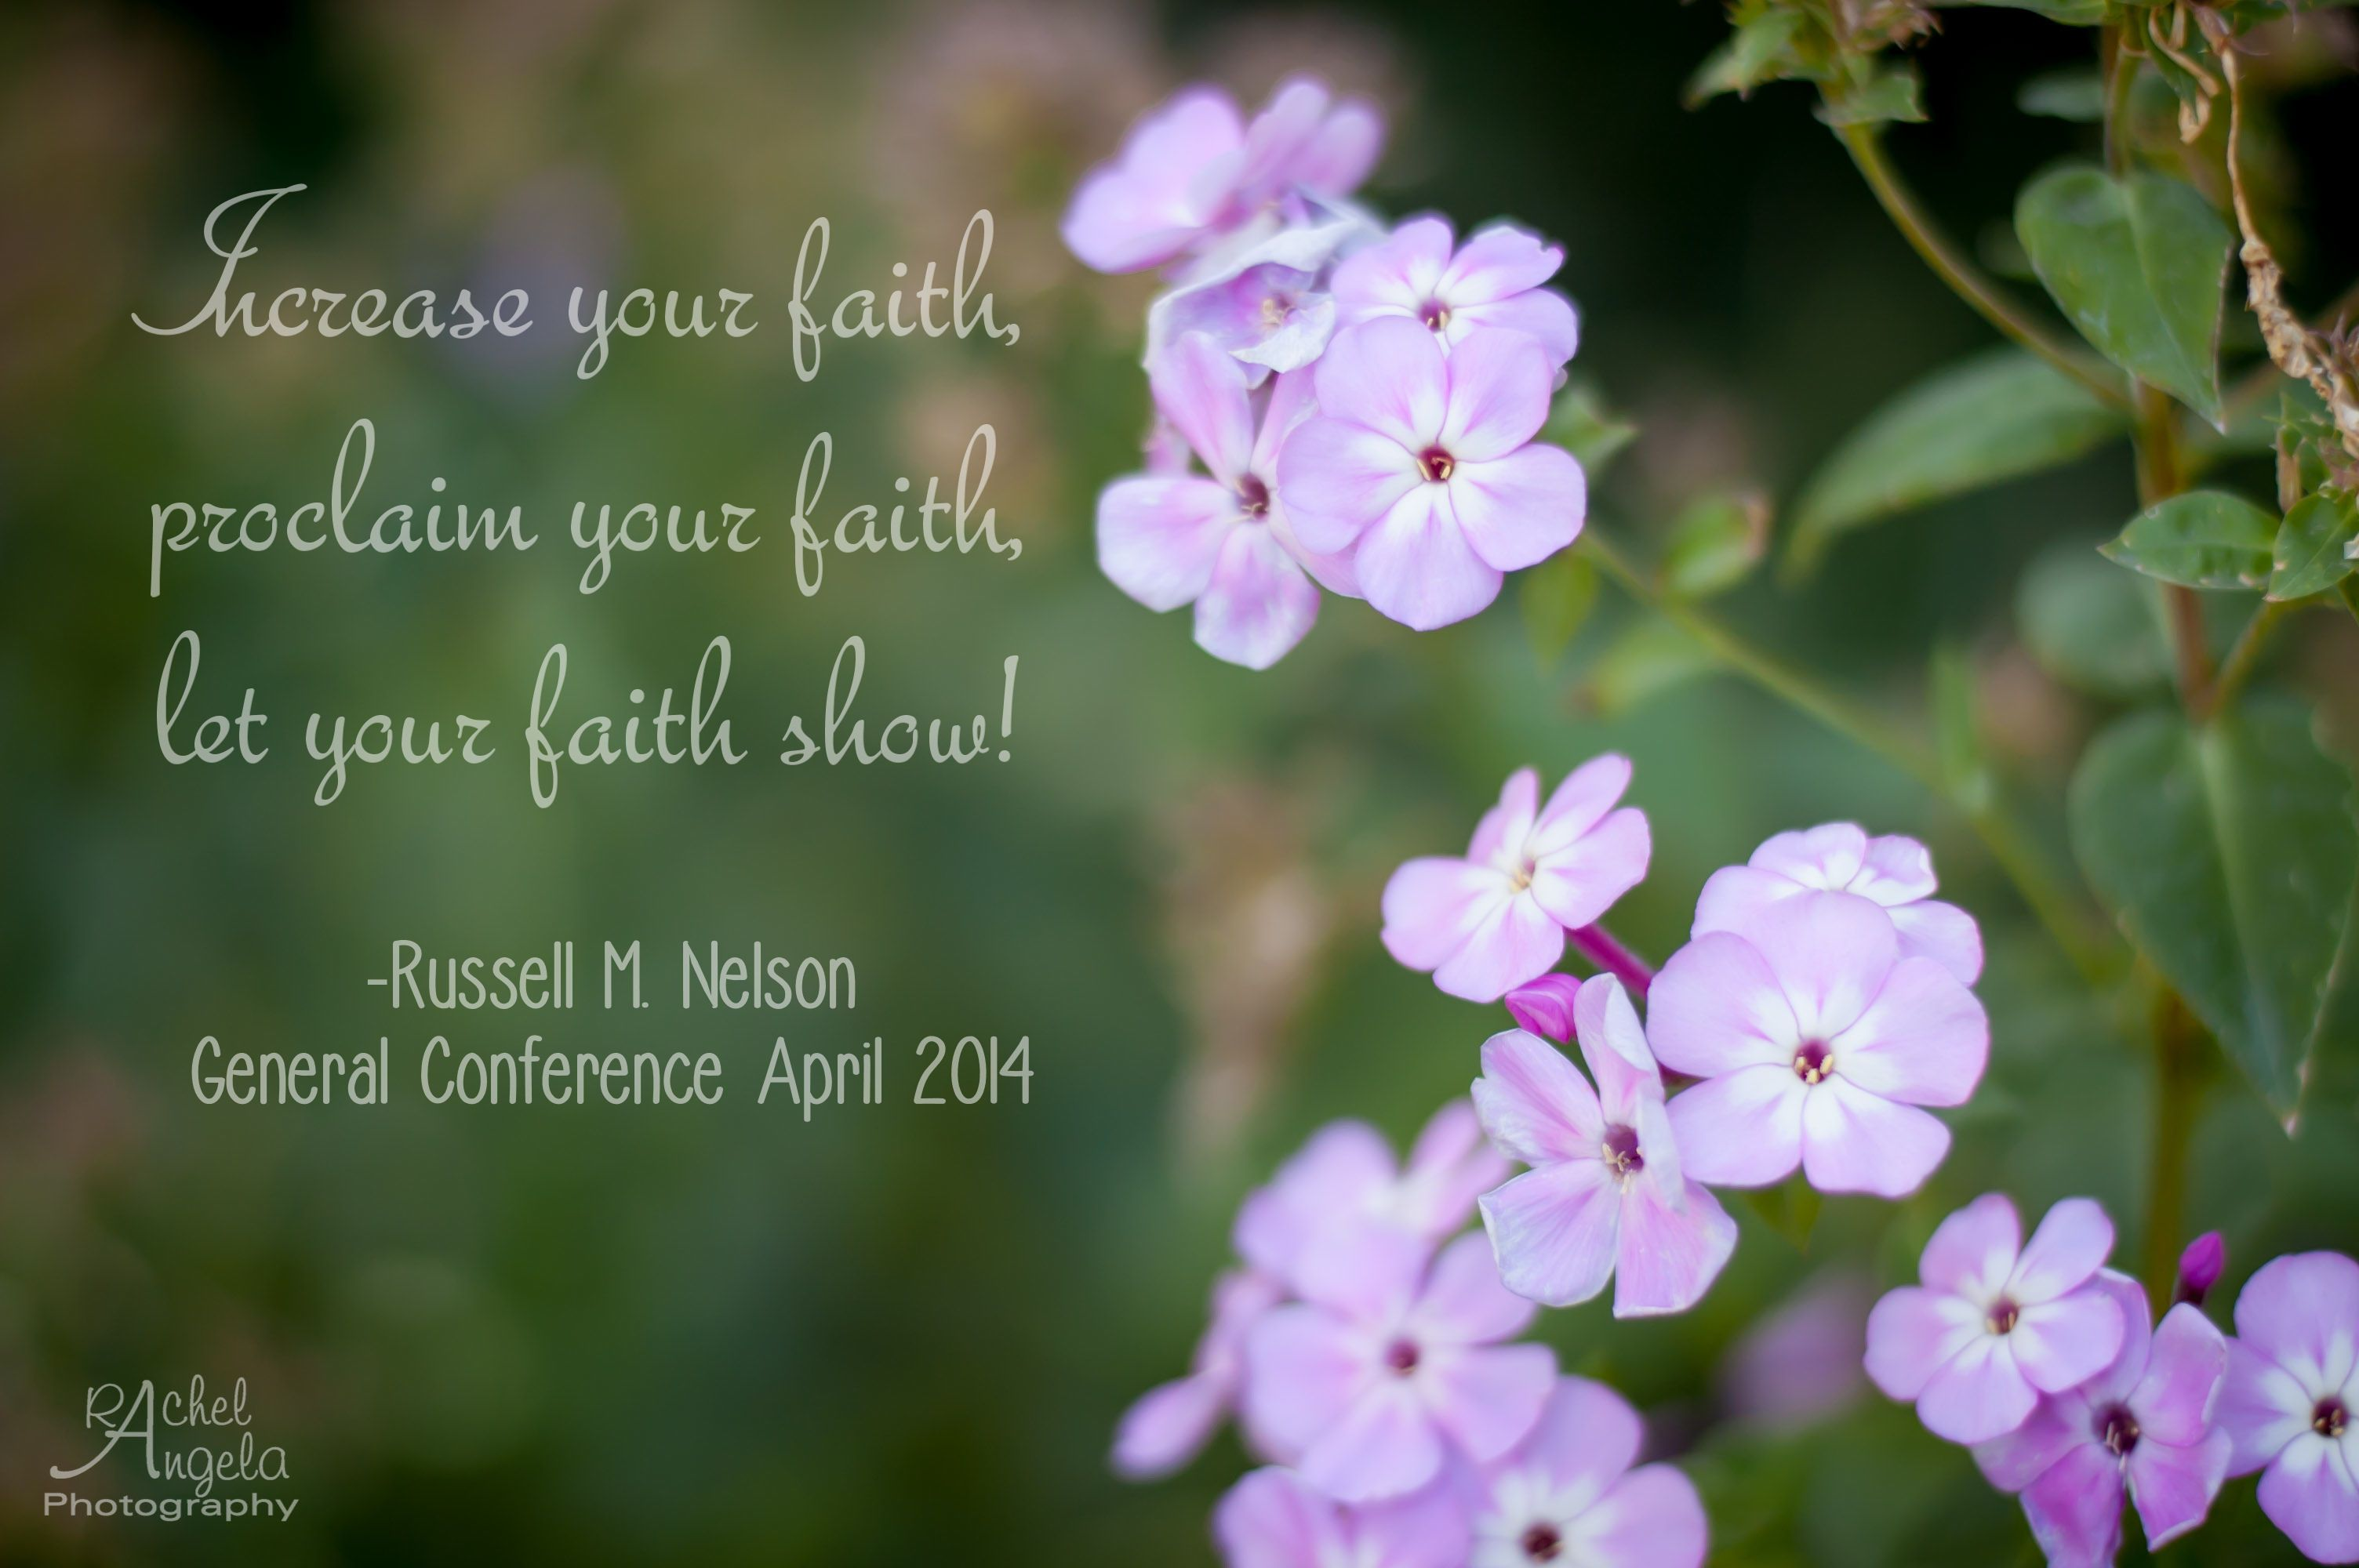 #ldsconf General Conference 2014 Russell M. Nelson